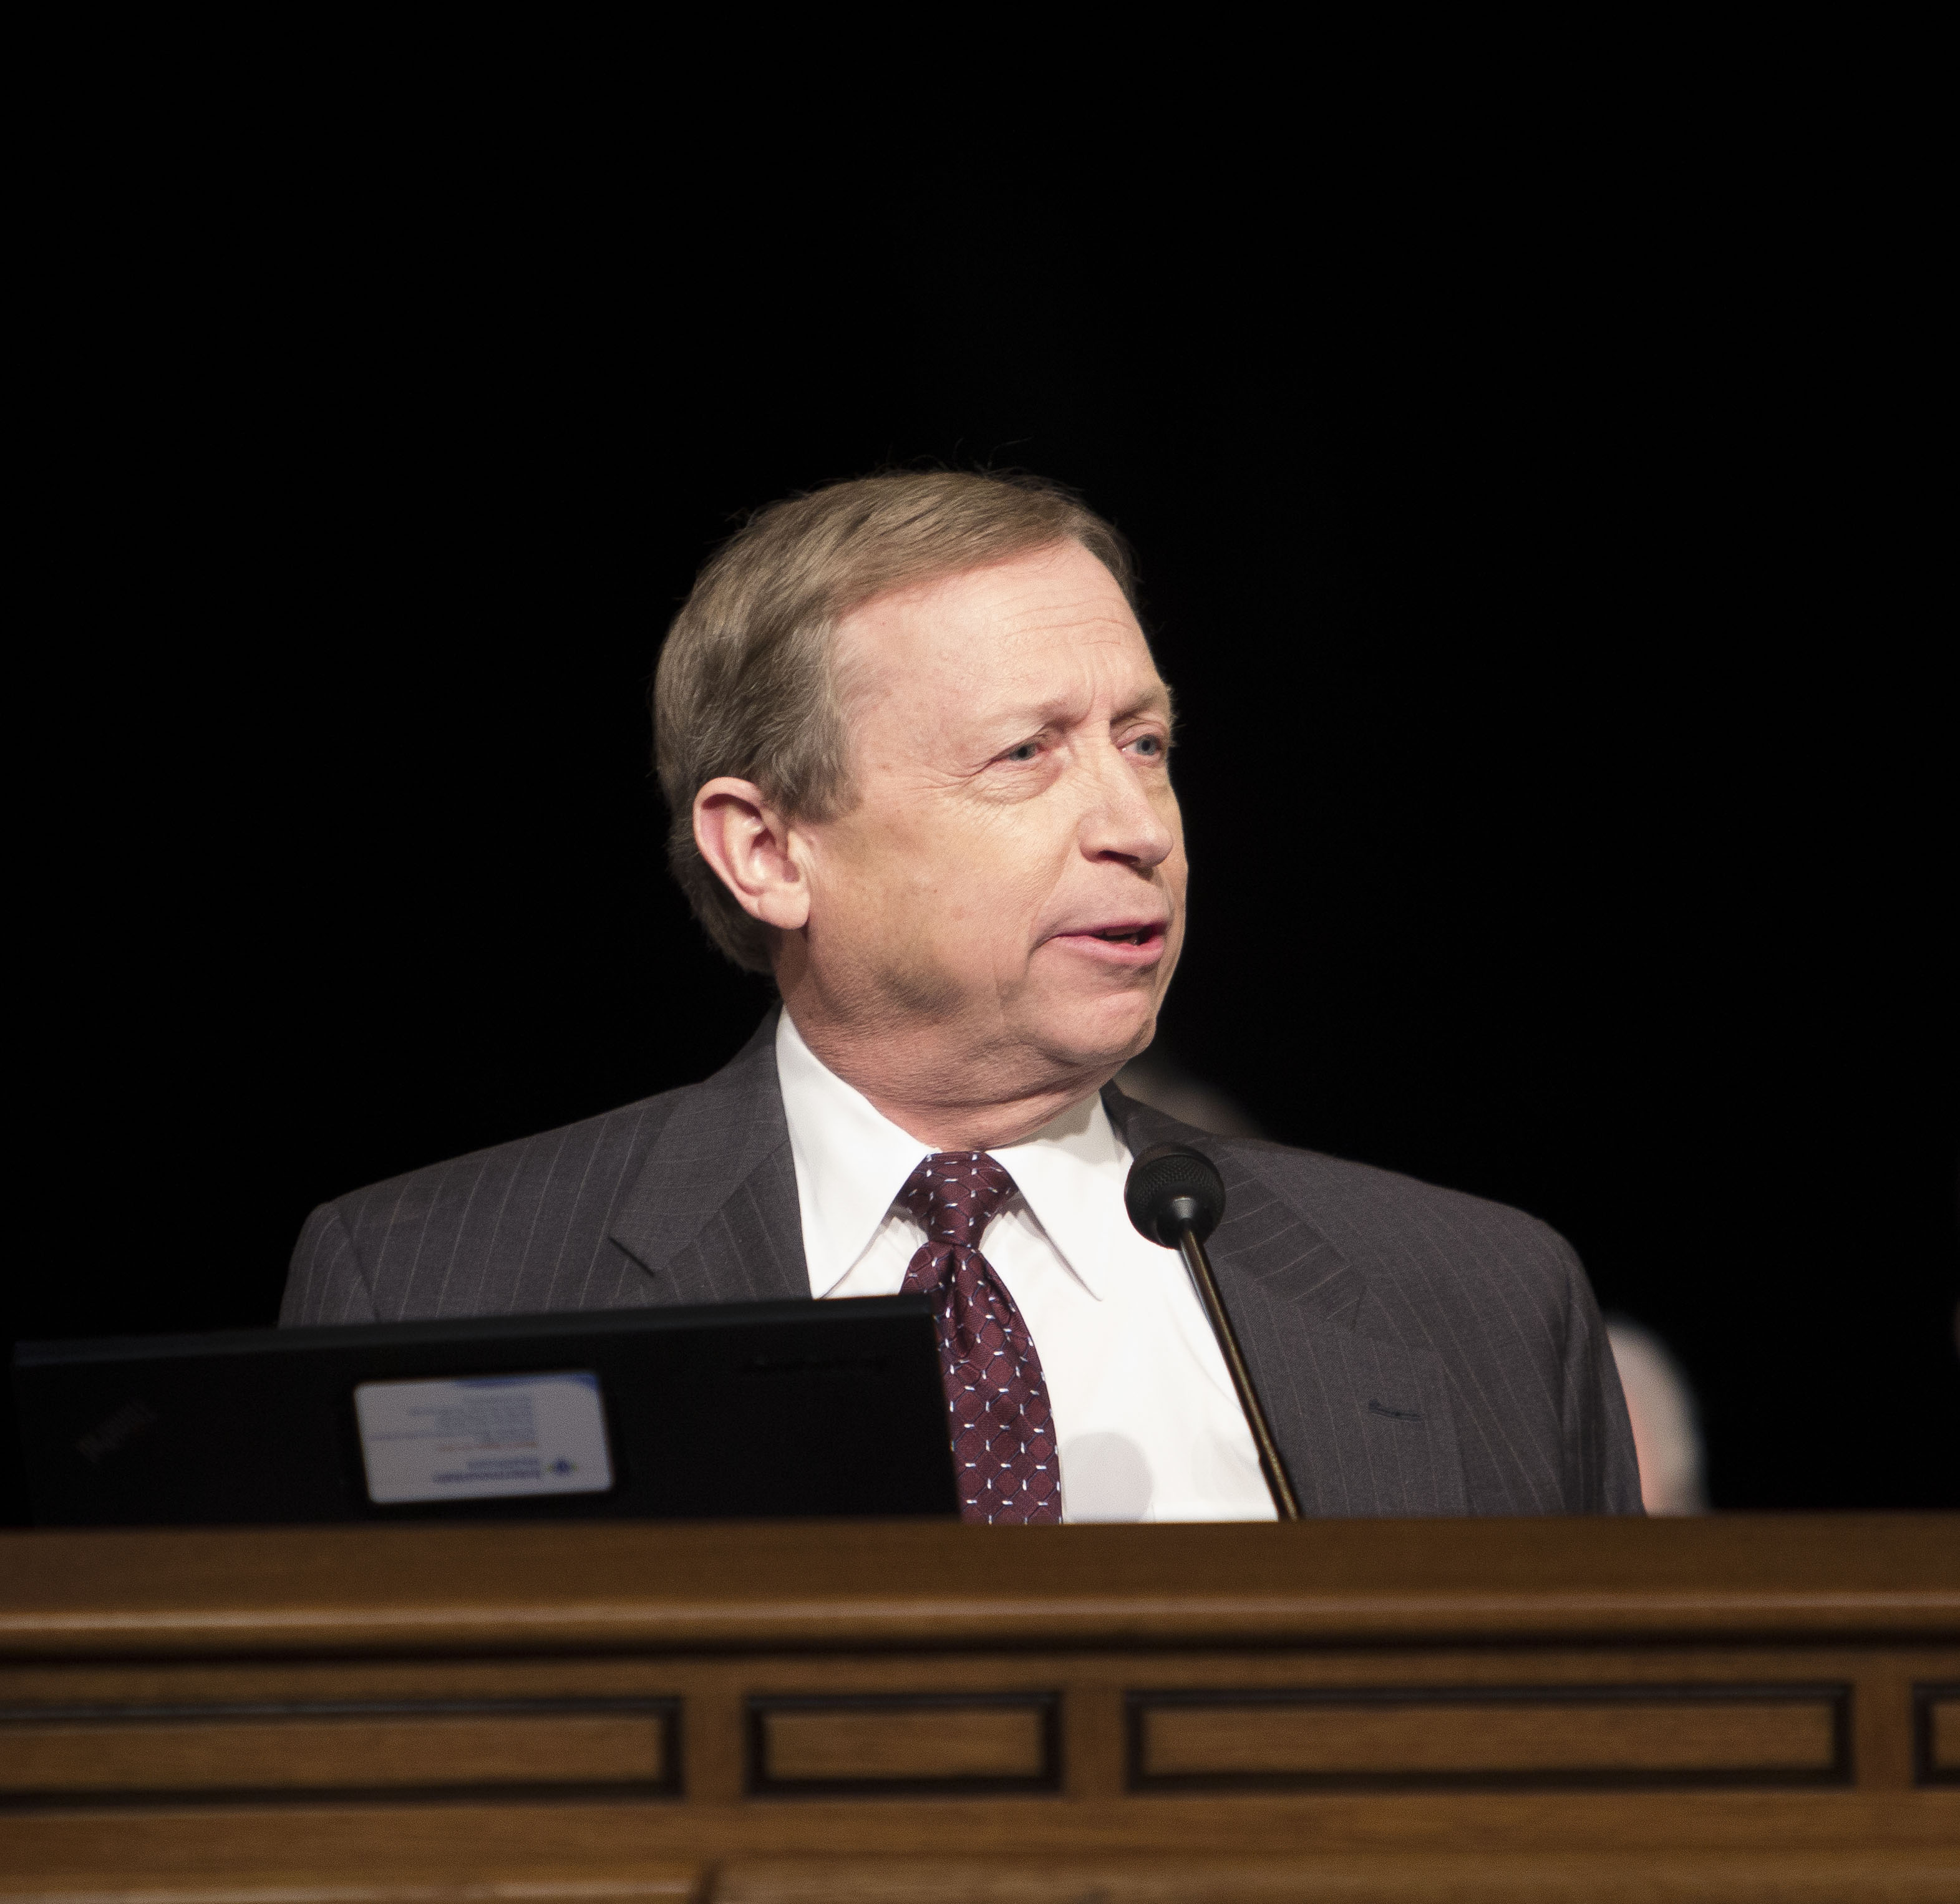 Dr. Brent C. James, the executive director of the Institute for Health Care Delivery Research, IHC, speaks at a BYU forum March 18.